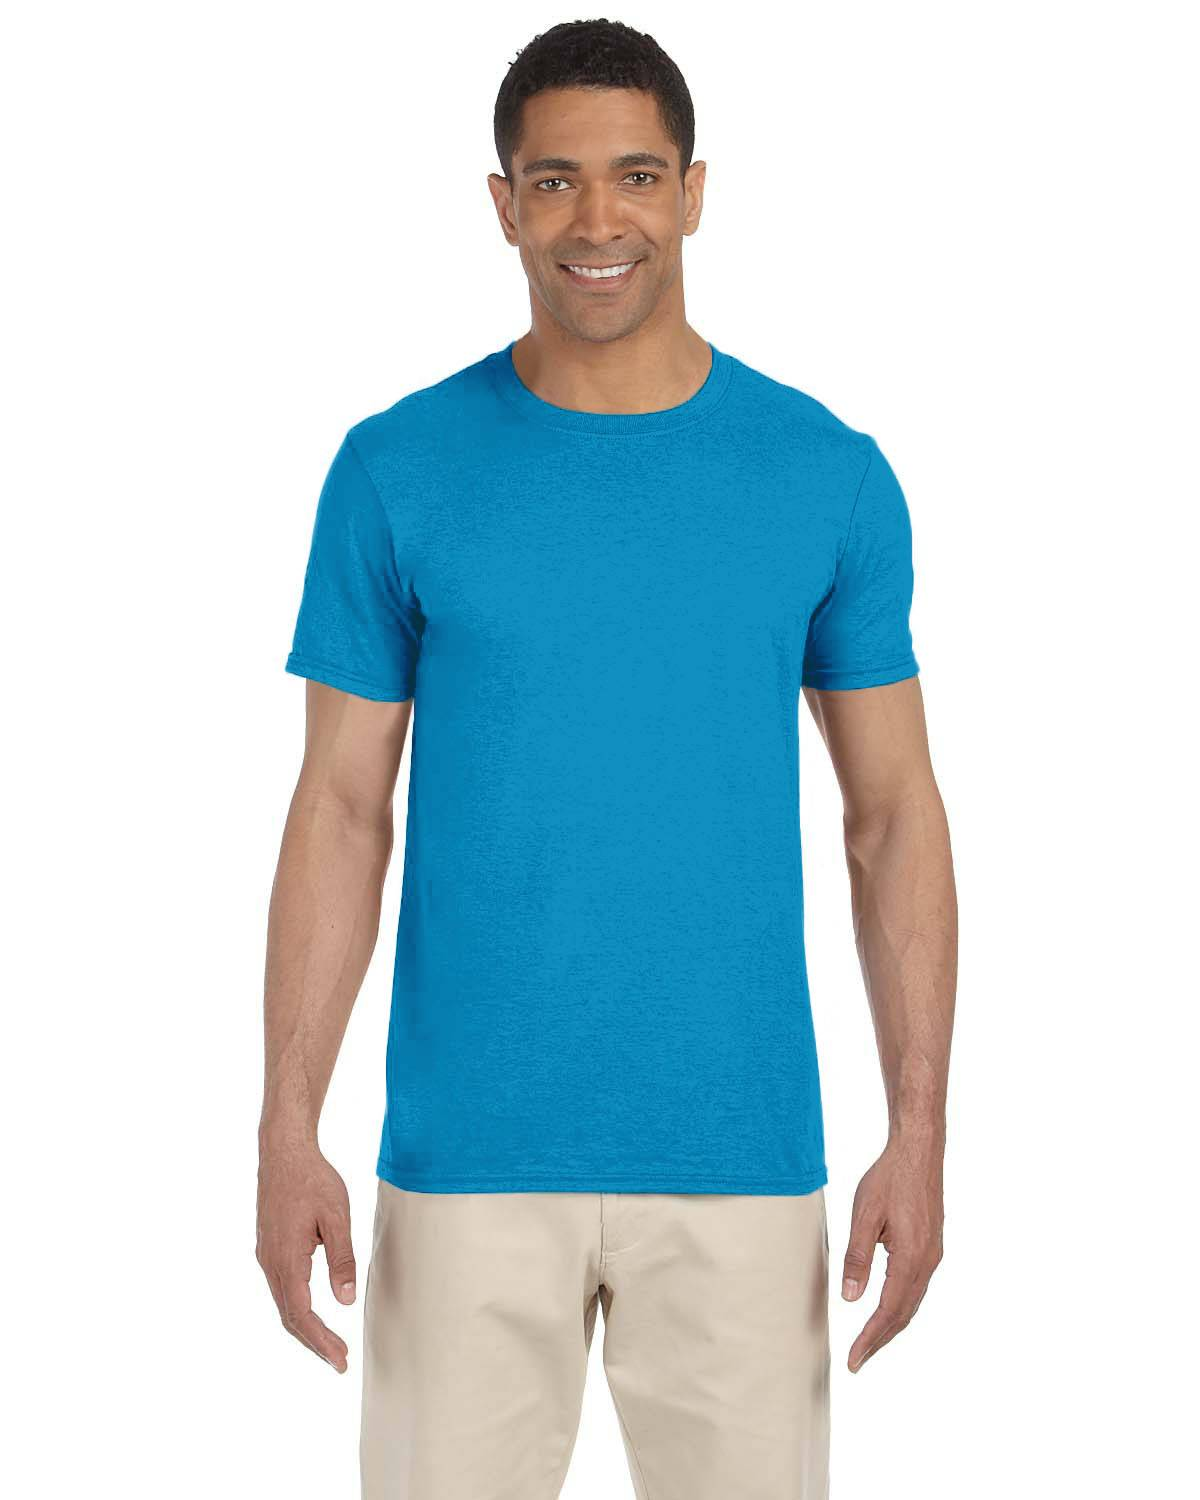 Gildan Adult Softstyle 7.5 oz./lin. yd. T-Shirt | G640